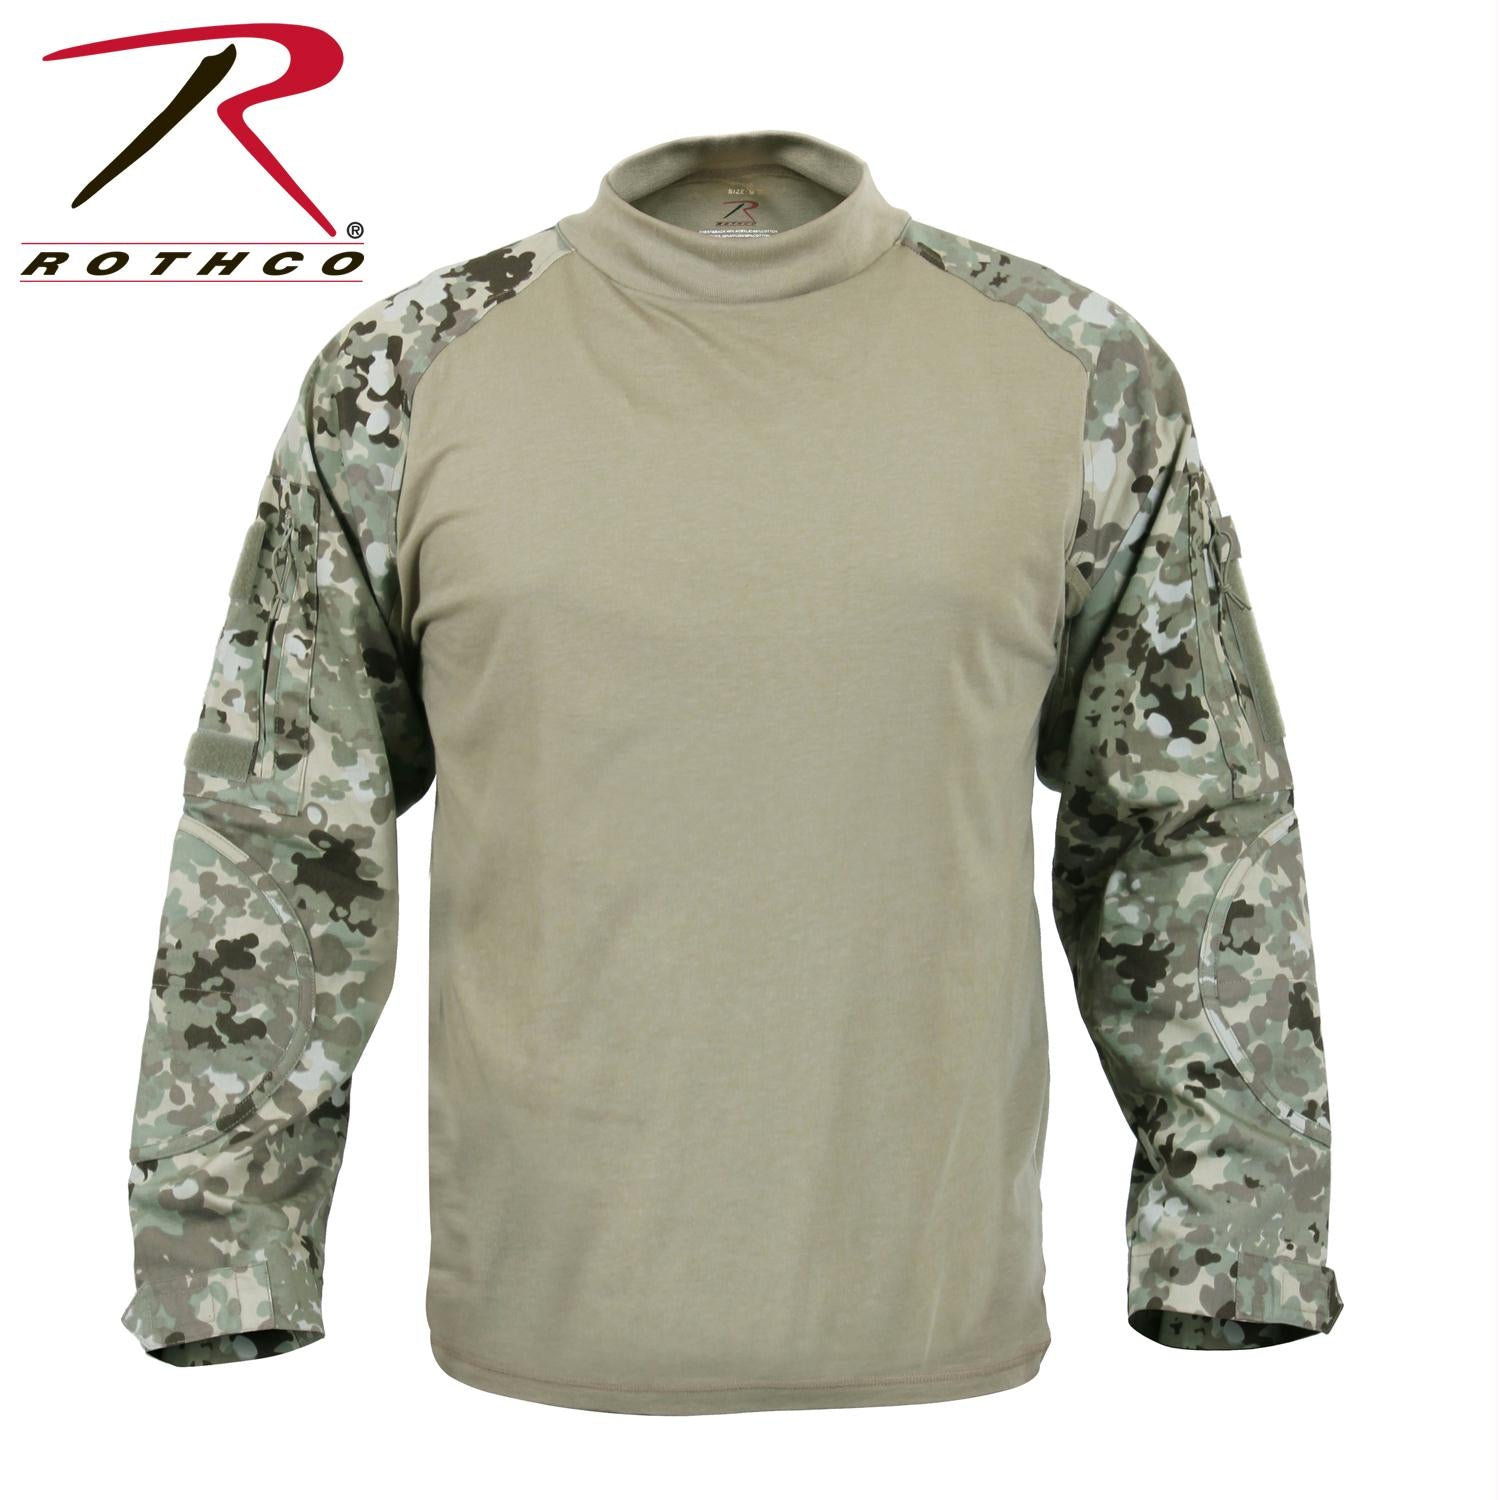 Rothco Military FR NYCO Combat Shirt - Total Terrain Camo / 2XL